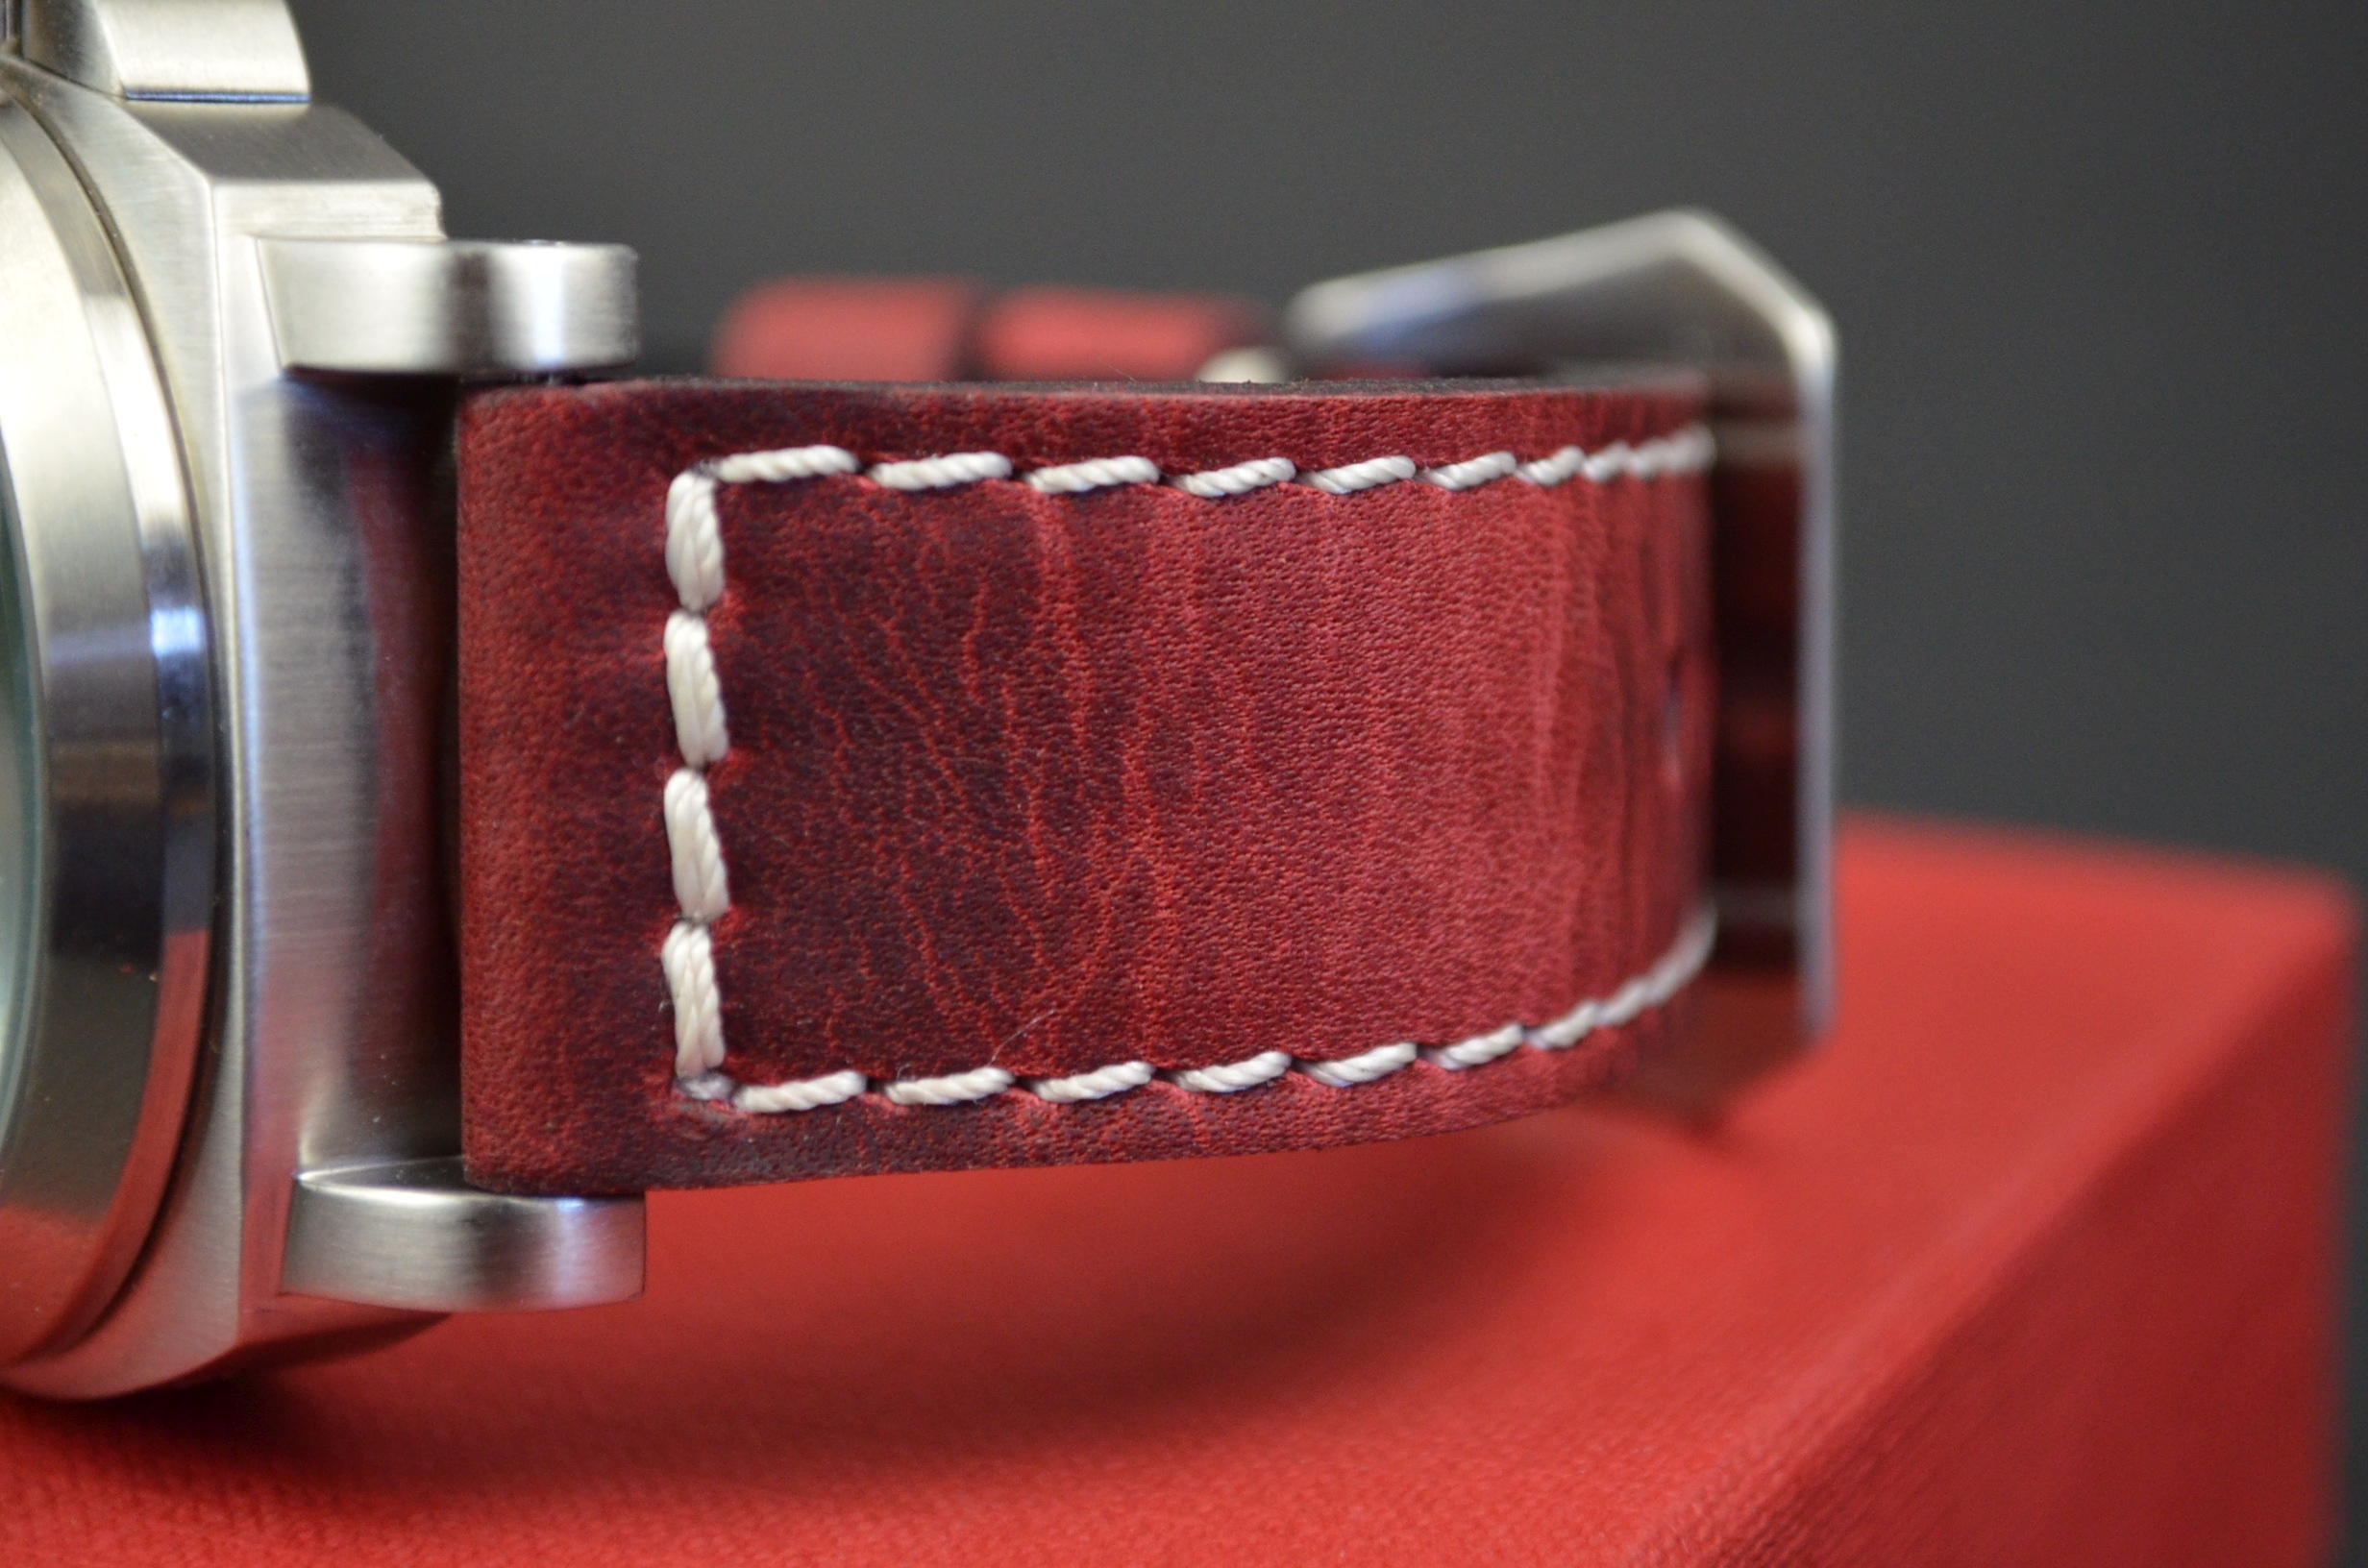 RED II is one of our hand crafted watch straps. Available in red color, 3.5 - 4 mm thick.